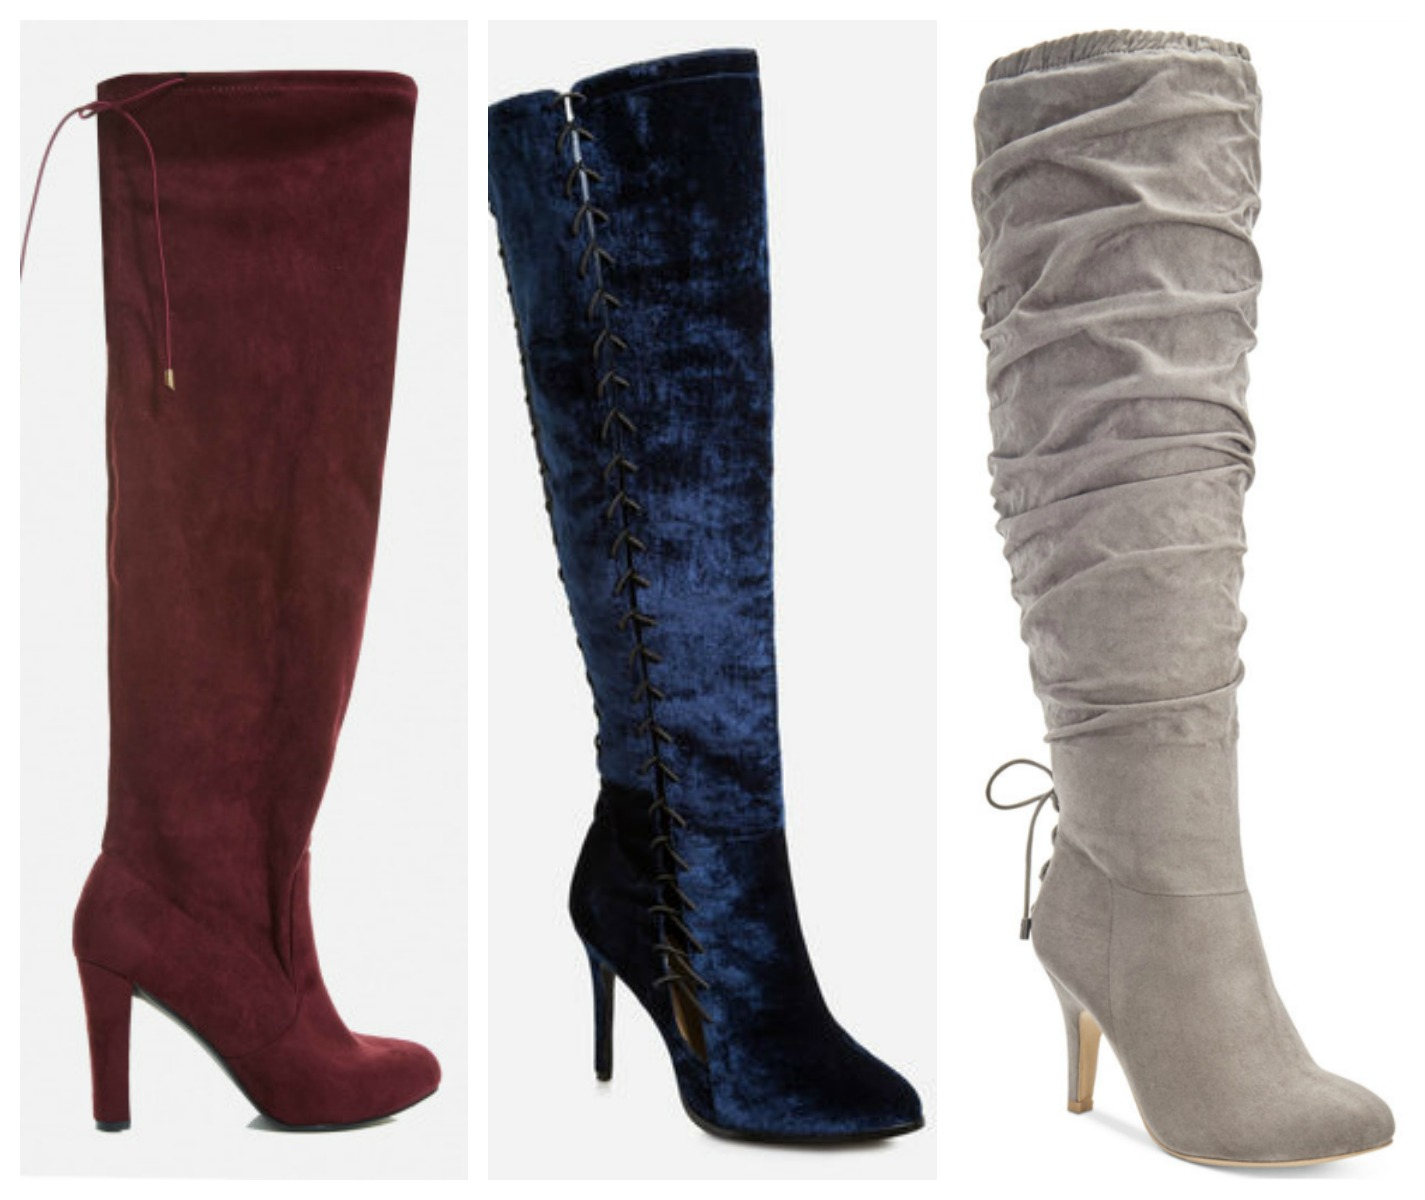 11 Sexy Wide Calf Boots Up To Size 13 Stylish Curves